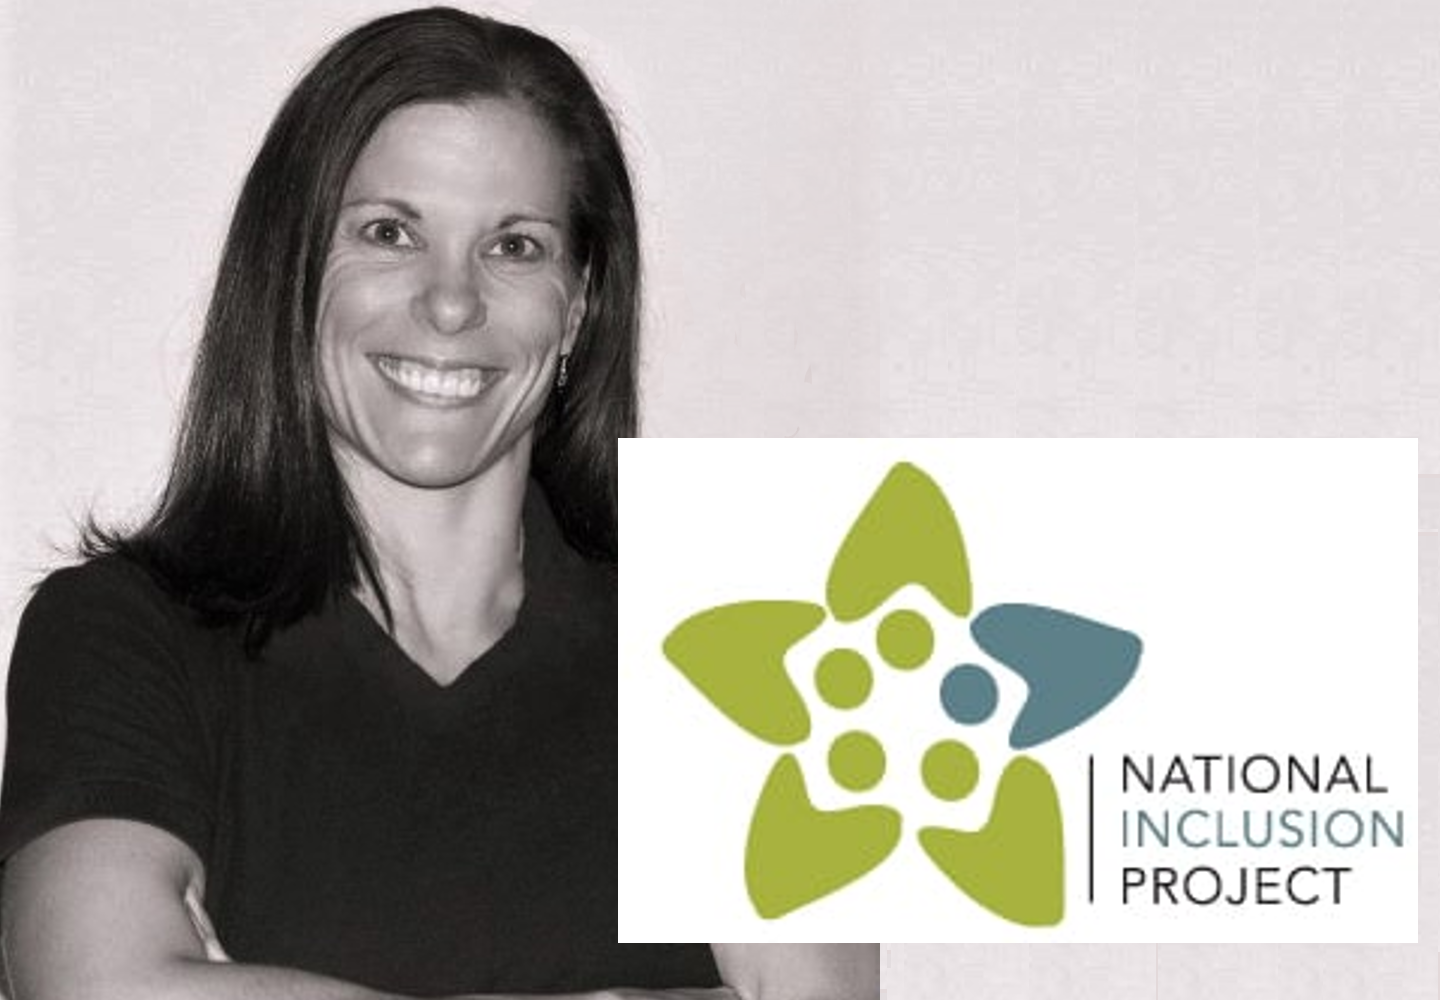 Black and white headshot of Amanda Kloo, a smiling woman with dark, shoulder-length hair. Superimposed over the headshot is the National Inclusion Project's logo.